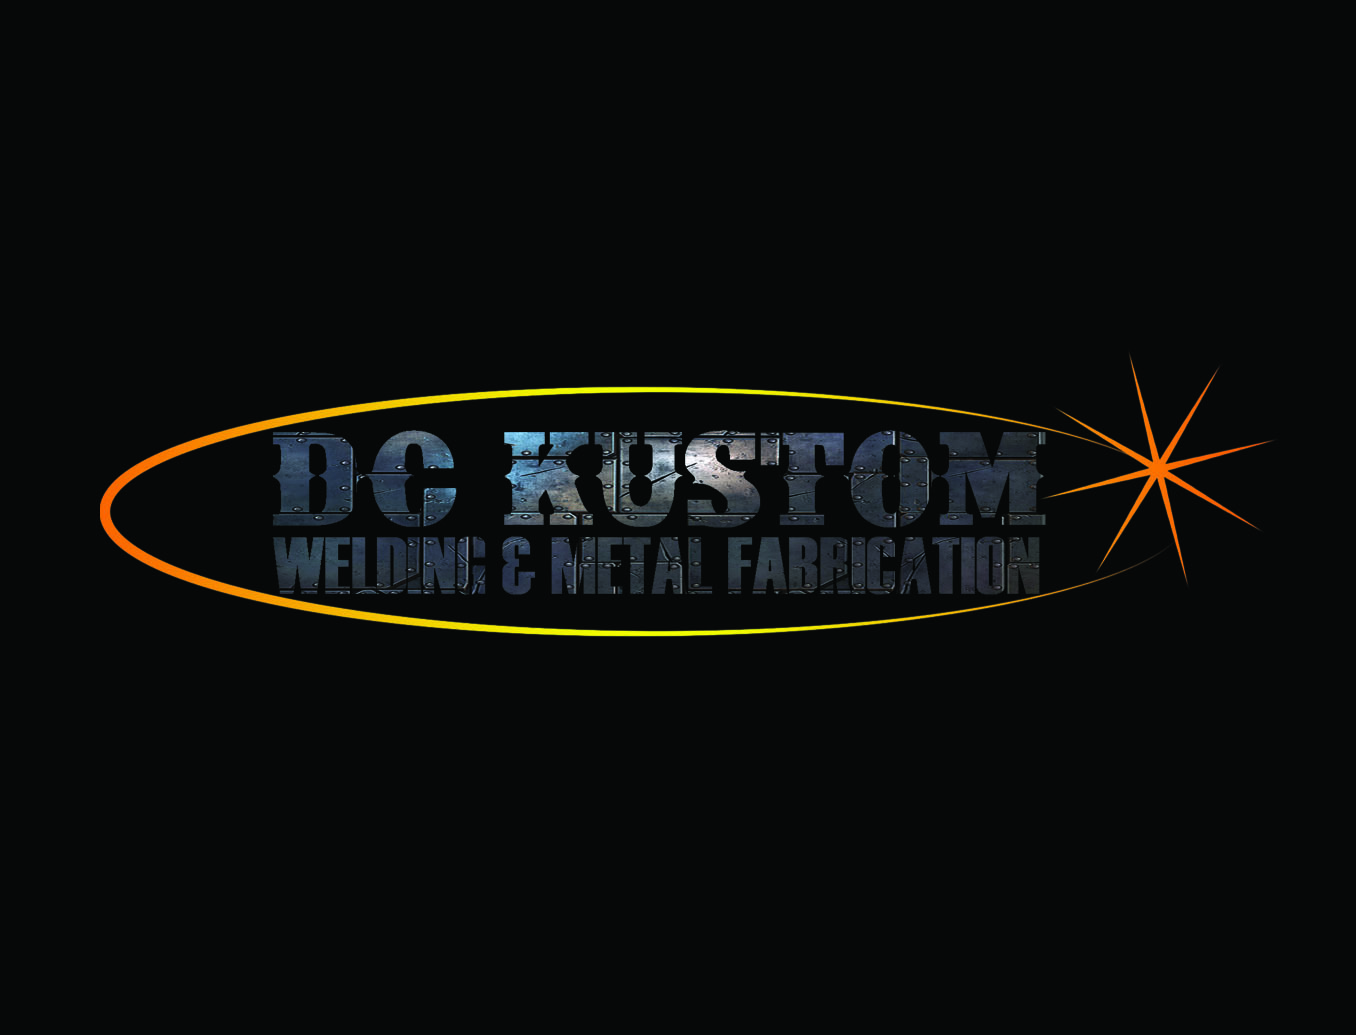 Logo Design by Arqui ACOSTA - Entry No. 121 in the Logo Design Contest Imaginative Logo Design for DC KUSTOM WELDING & METAL FABRICATION.